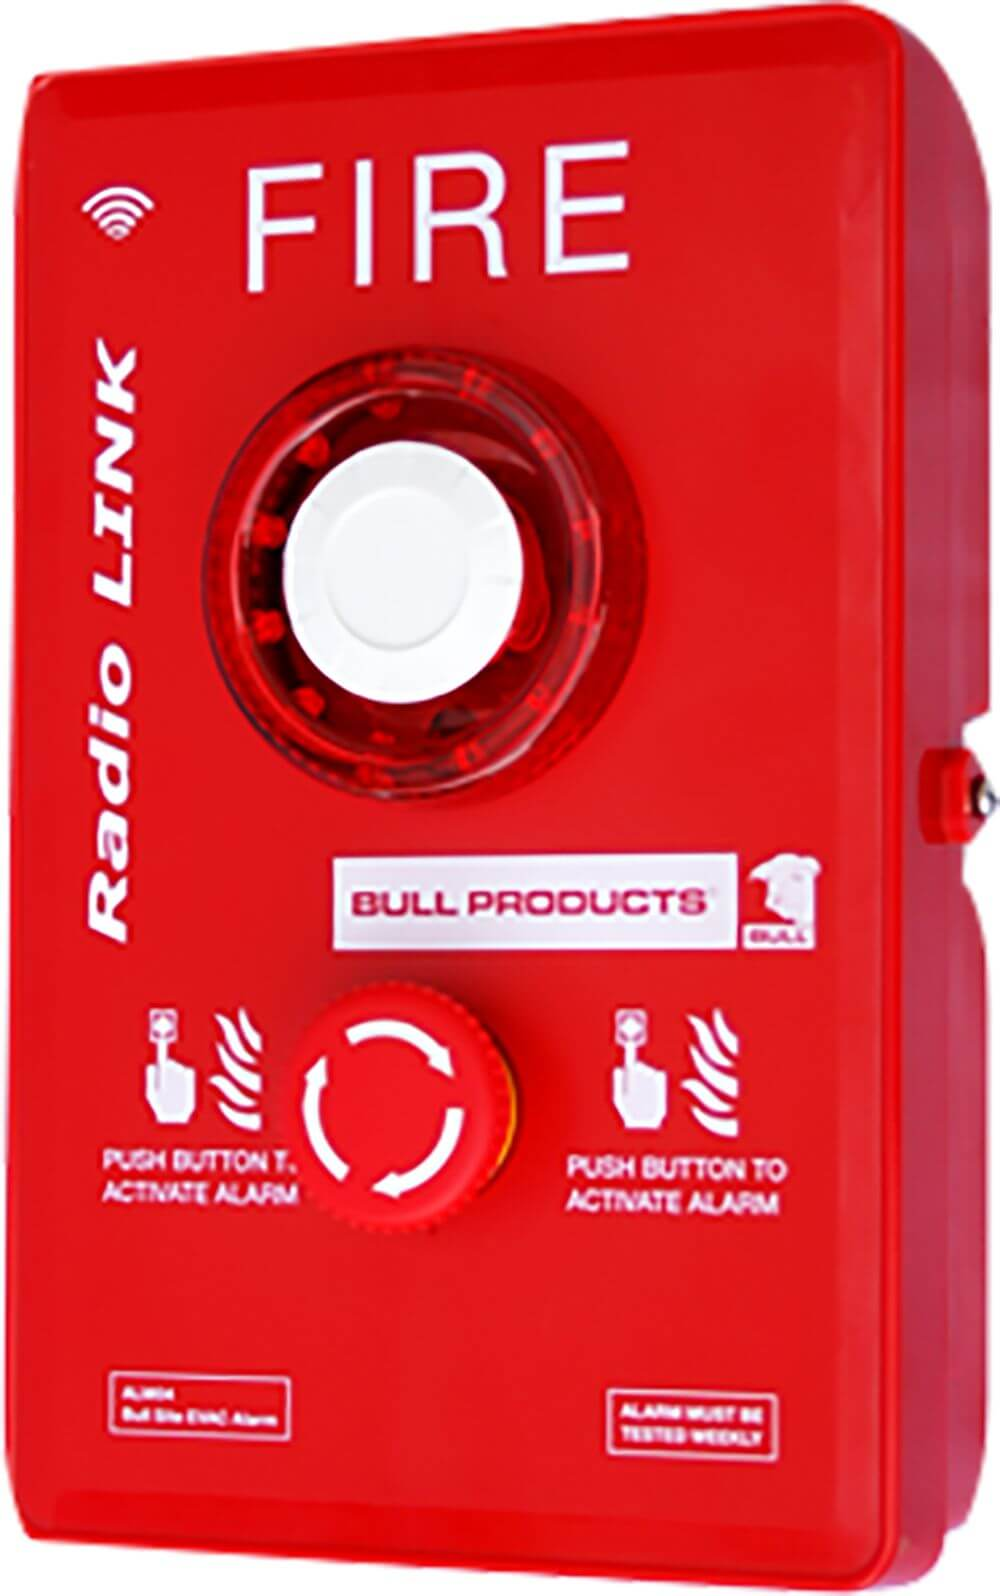 Alarms & Detectors | Fire Safety | Bull Products